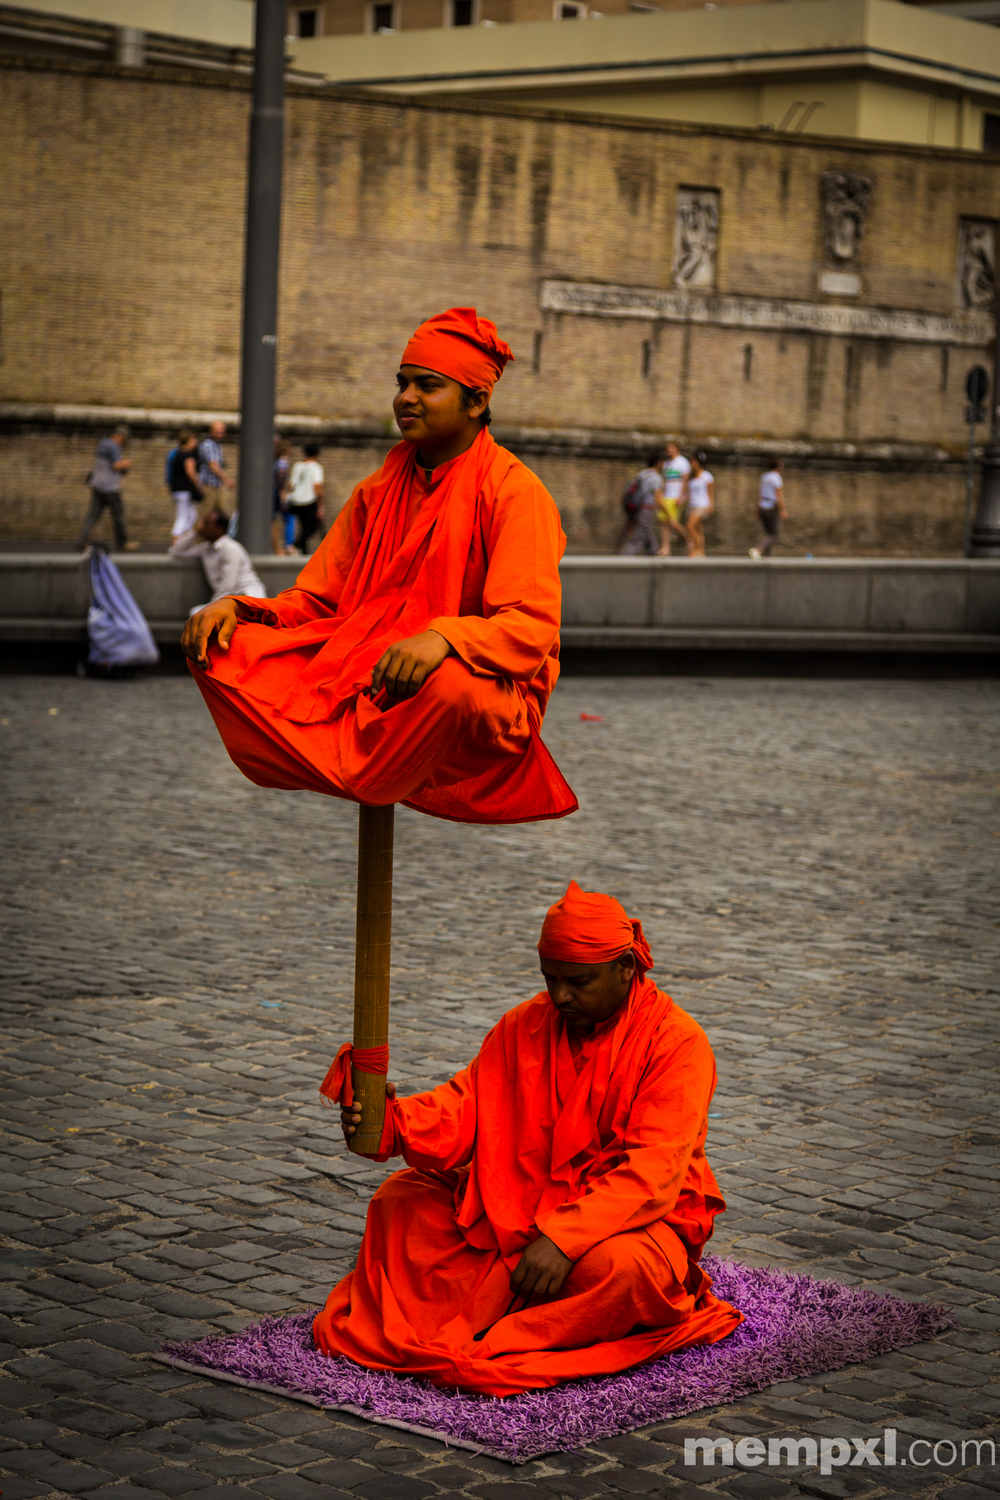 Street Performers near Vatican 2014 WM.jpg